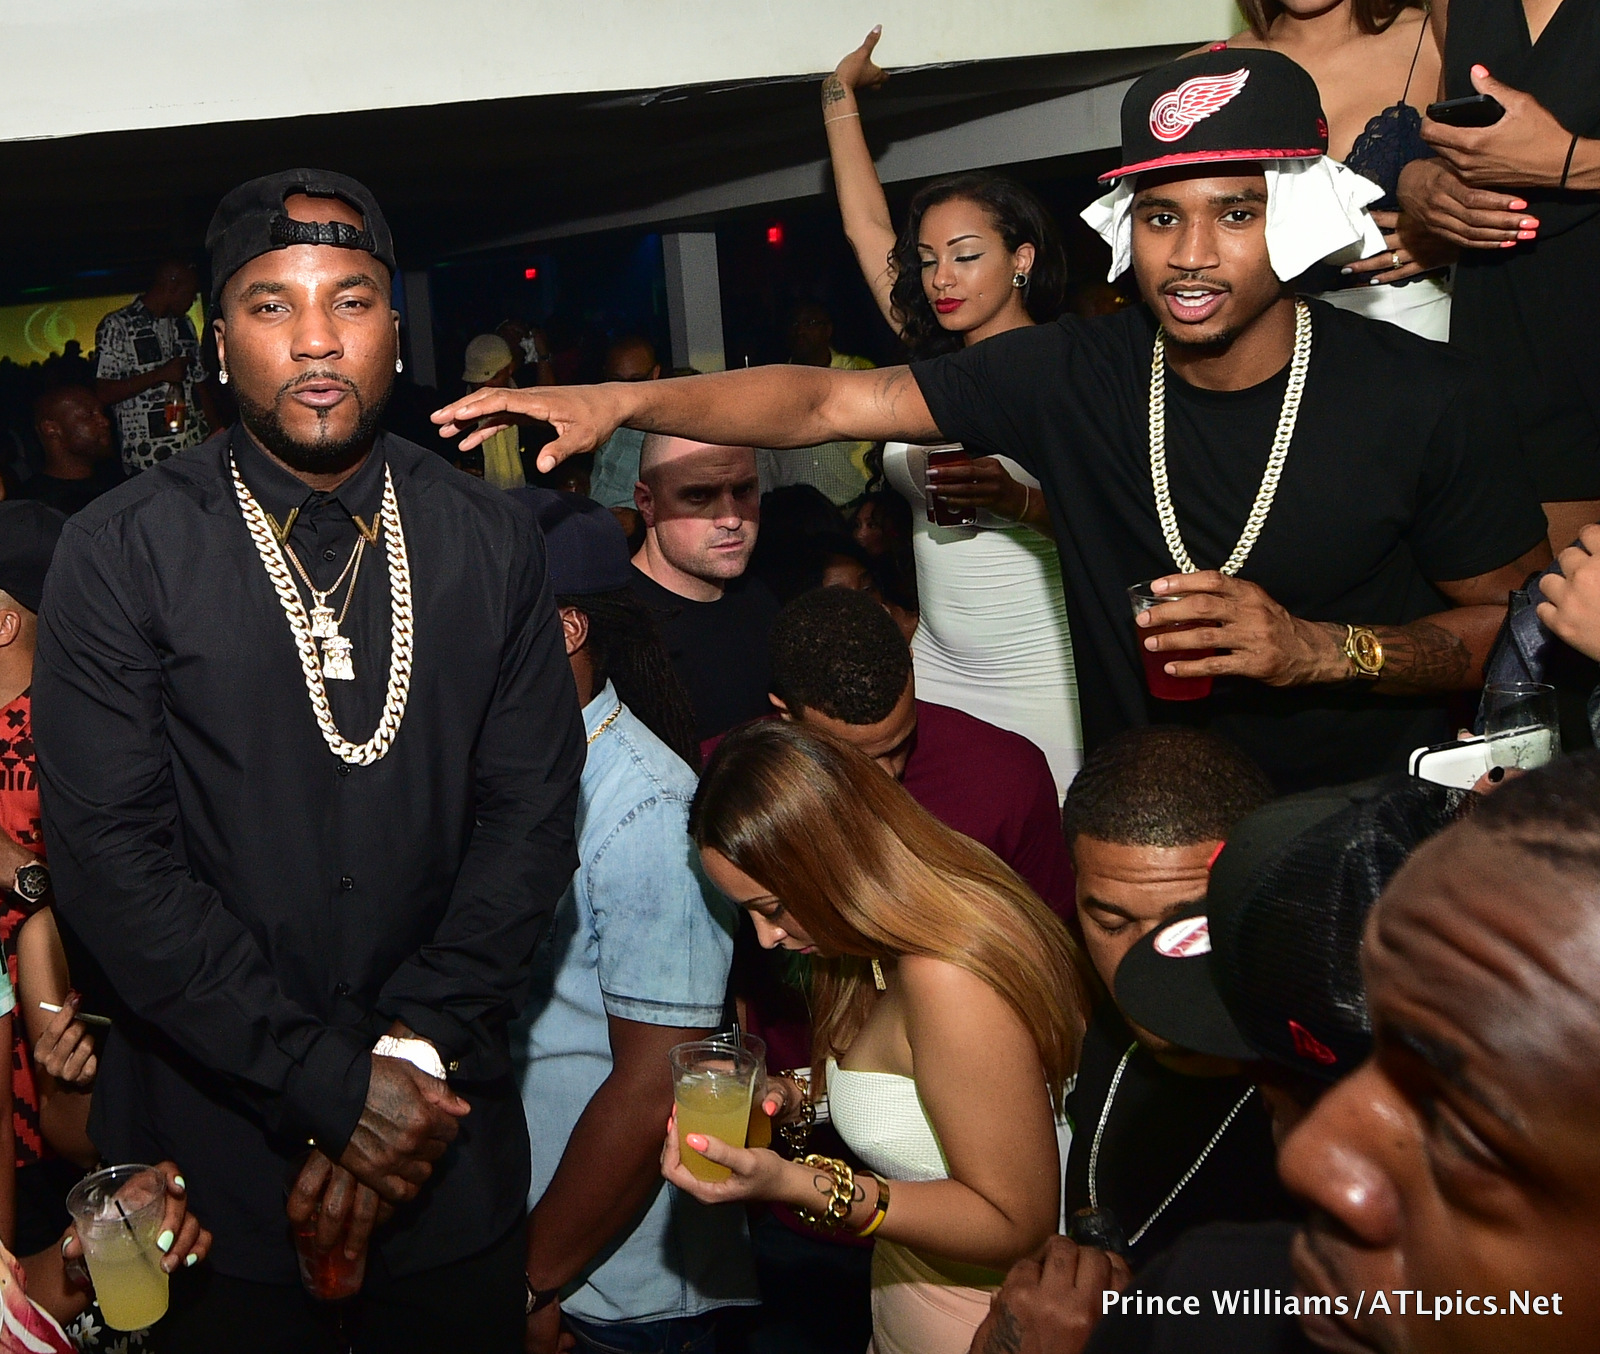 24f0af9b827 Trey Songz celebrated his album release party at Atlanta s Compound.  PAW 2223